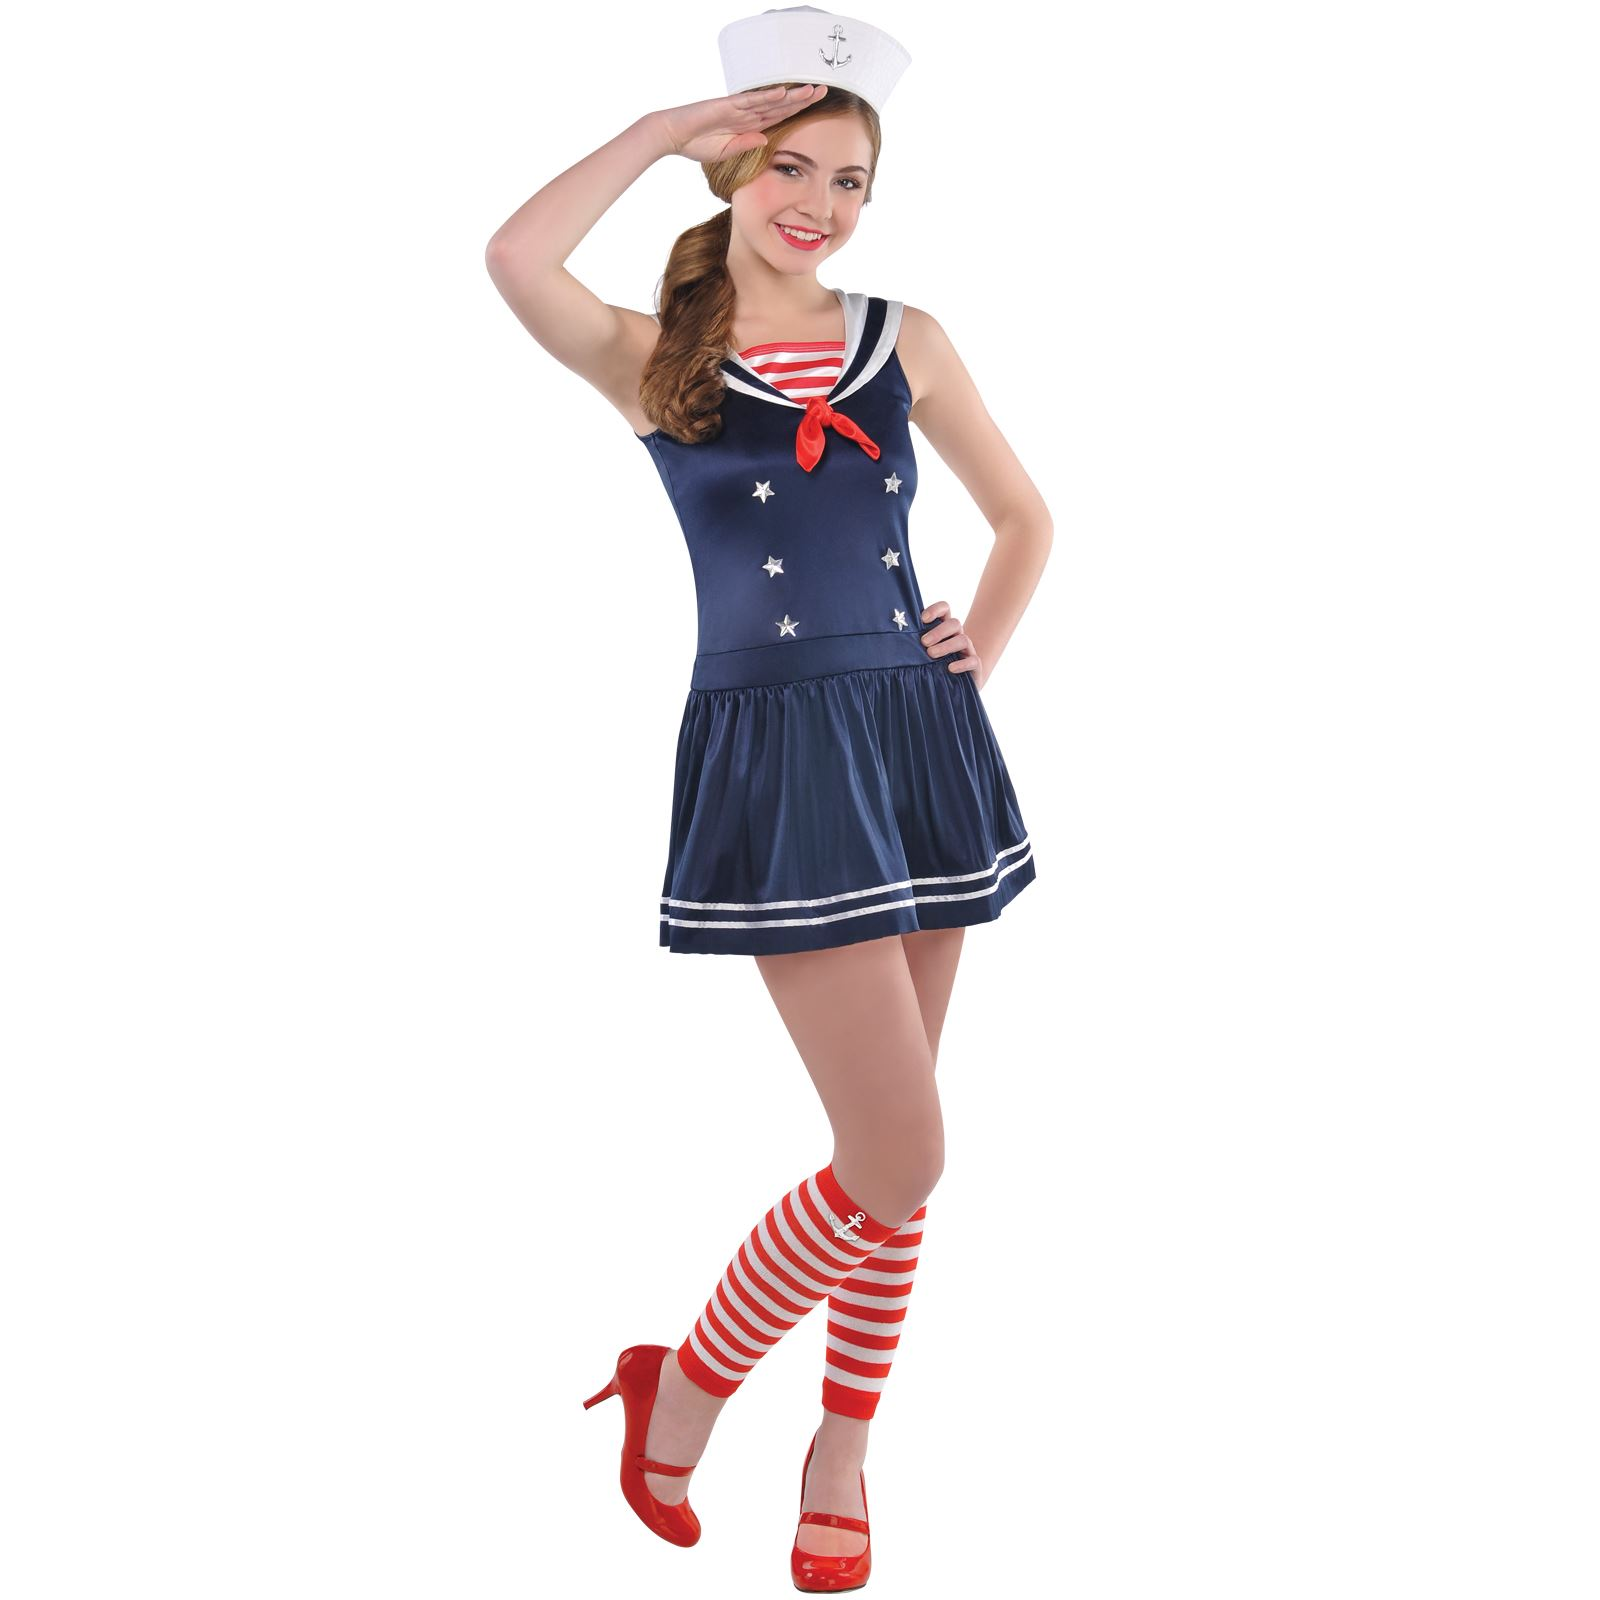 Find great deals on eBay for sailor outfit ladies. Shop with confidence.